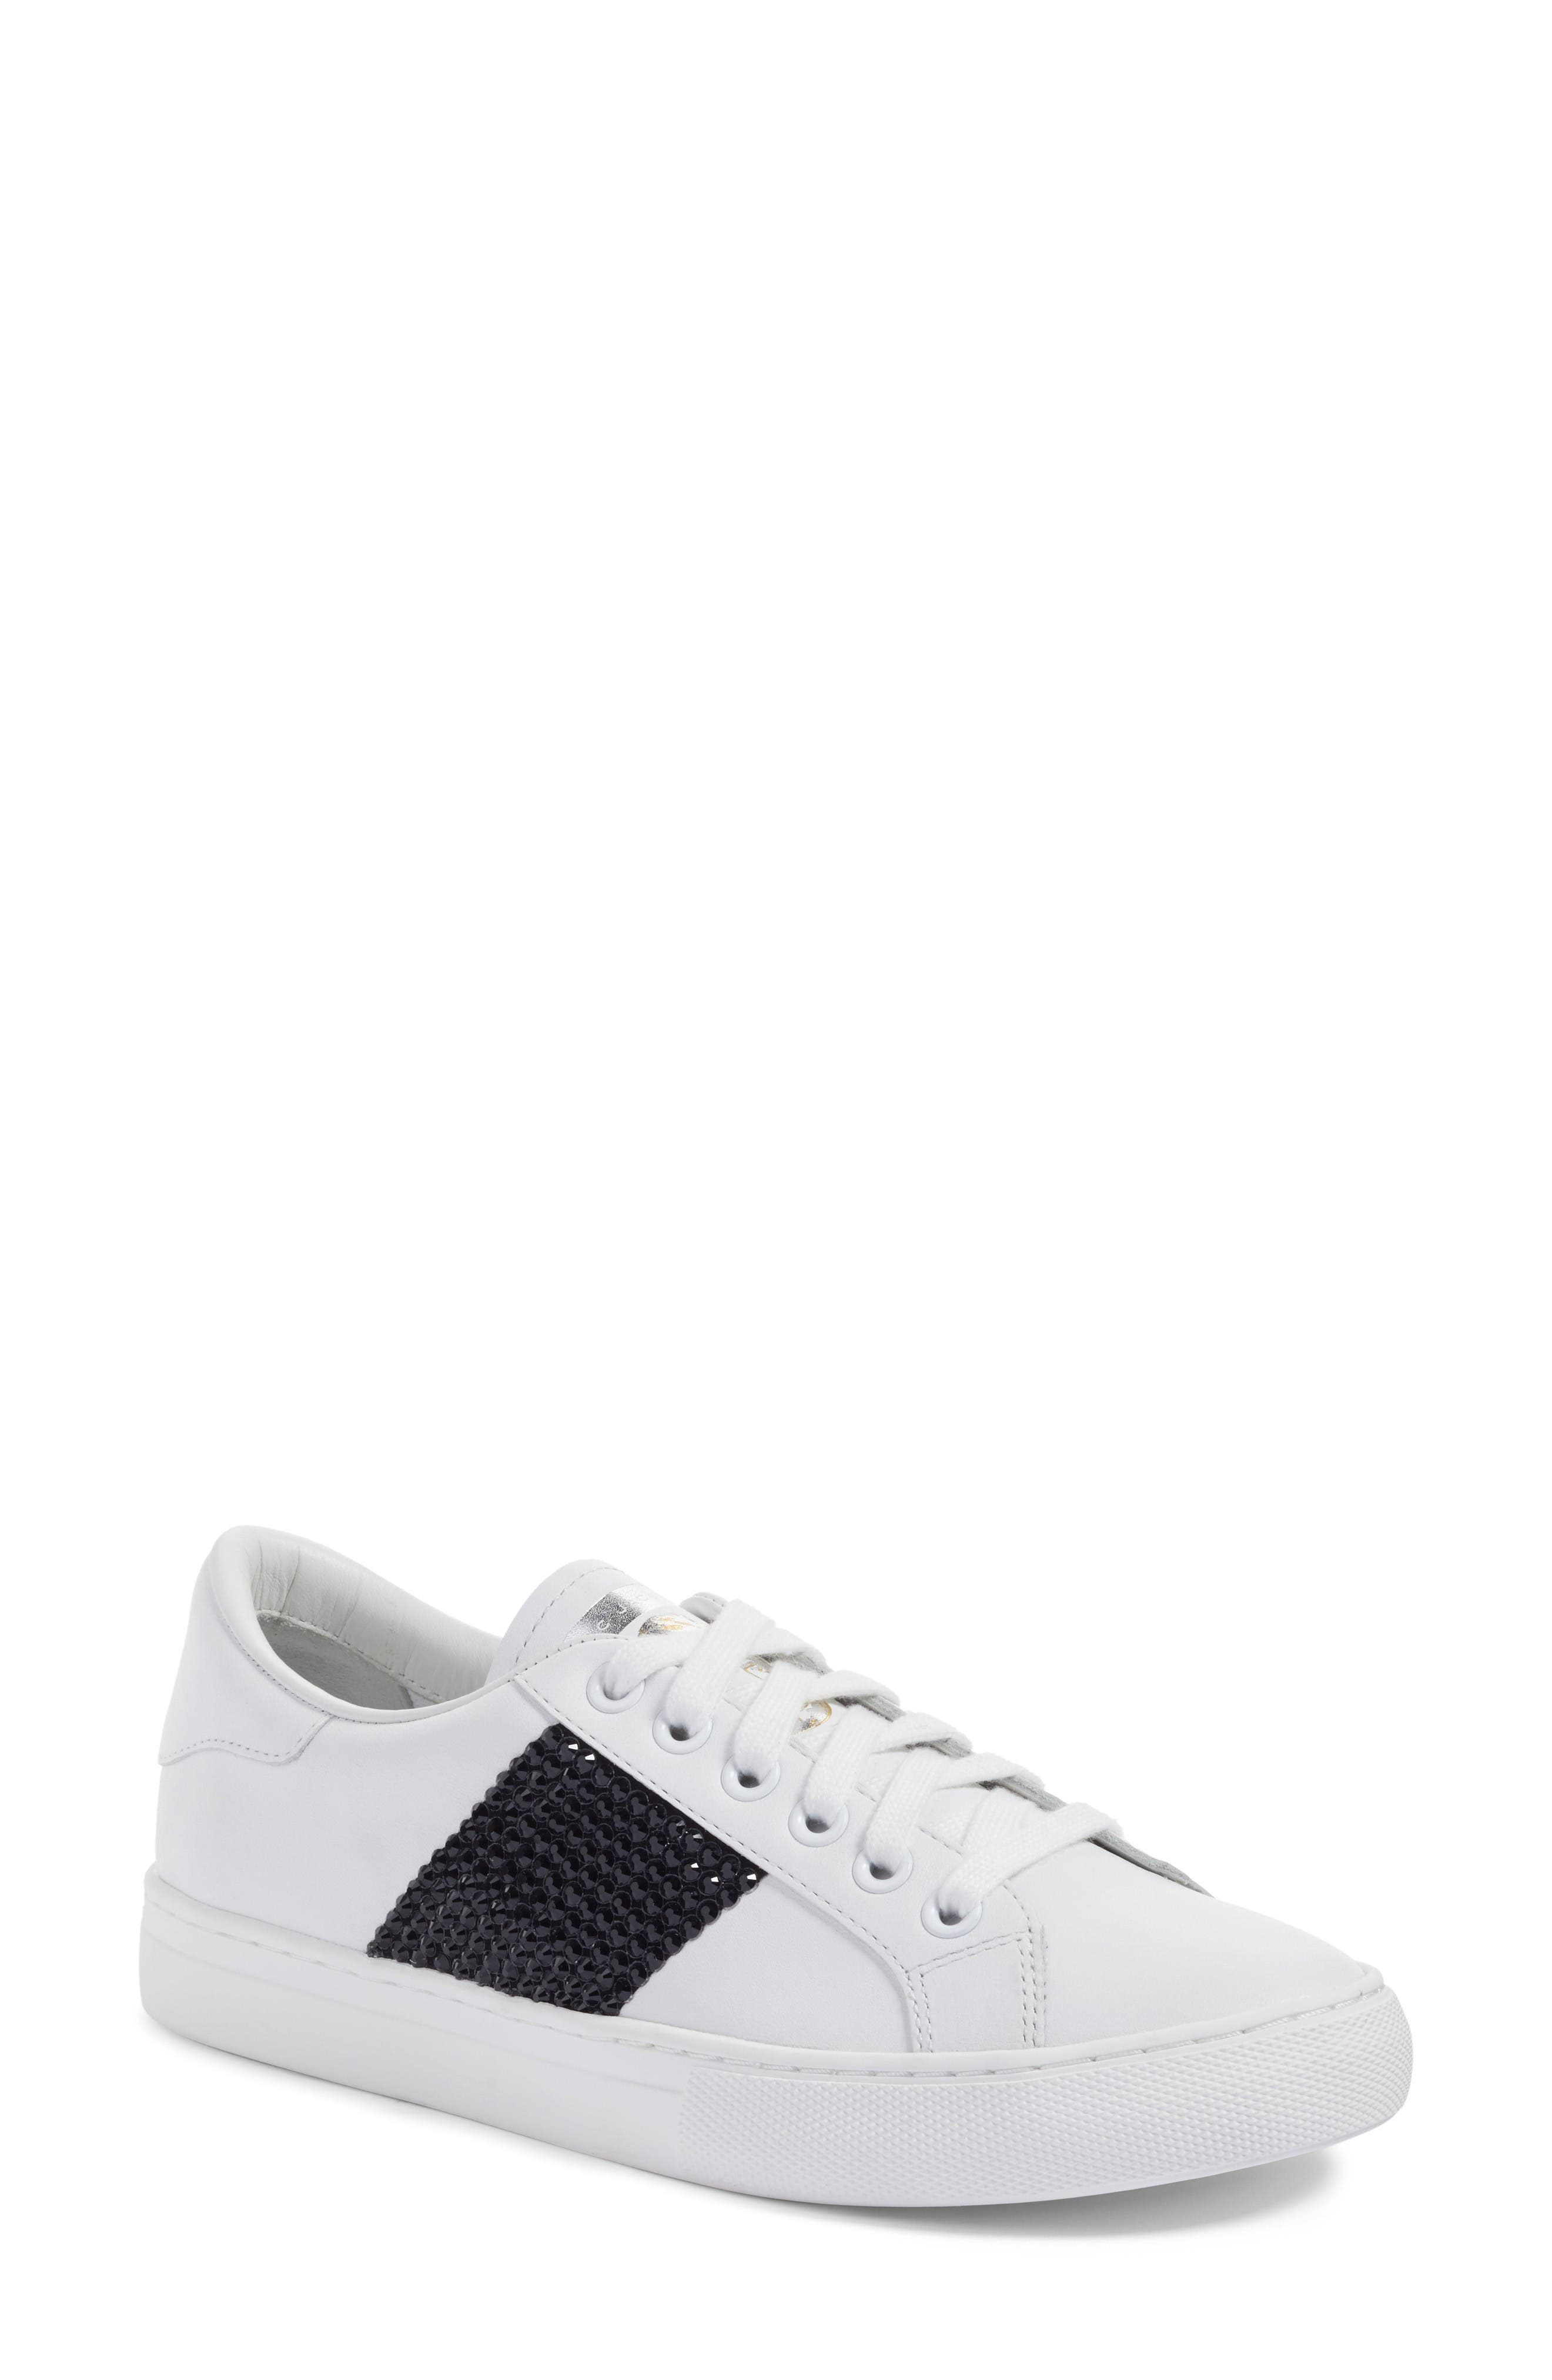 Alternate Image 1 Selected - MARC JACOBS Empire Embellished Sneaker (Women)